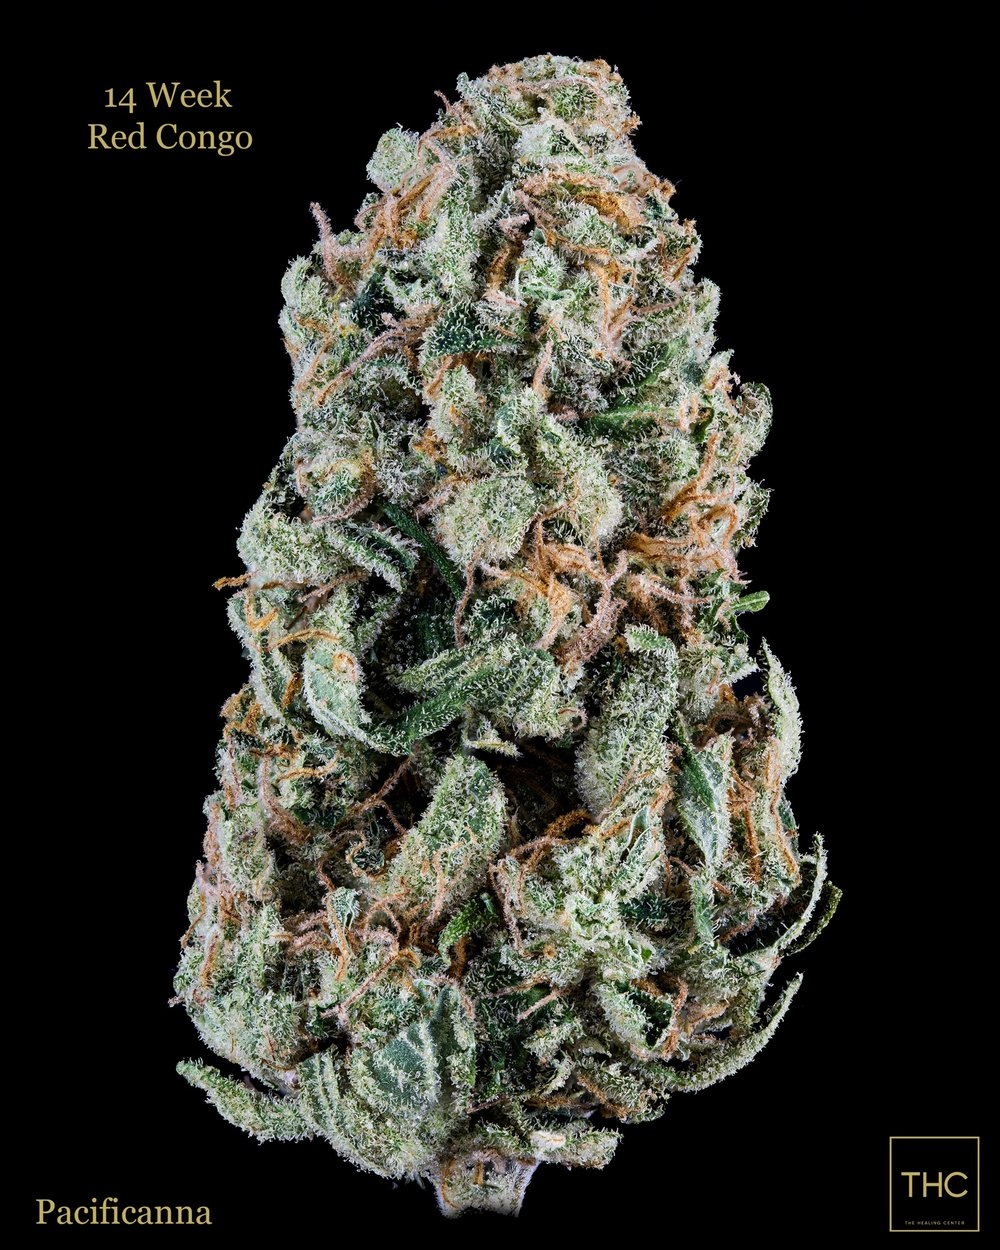 14 Week Red Congo Pacificanna THC.jpg